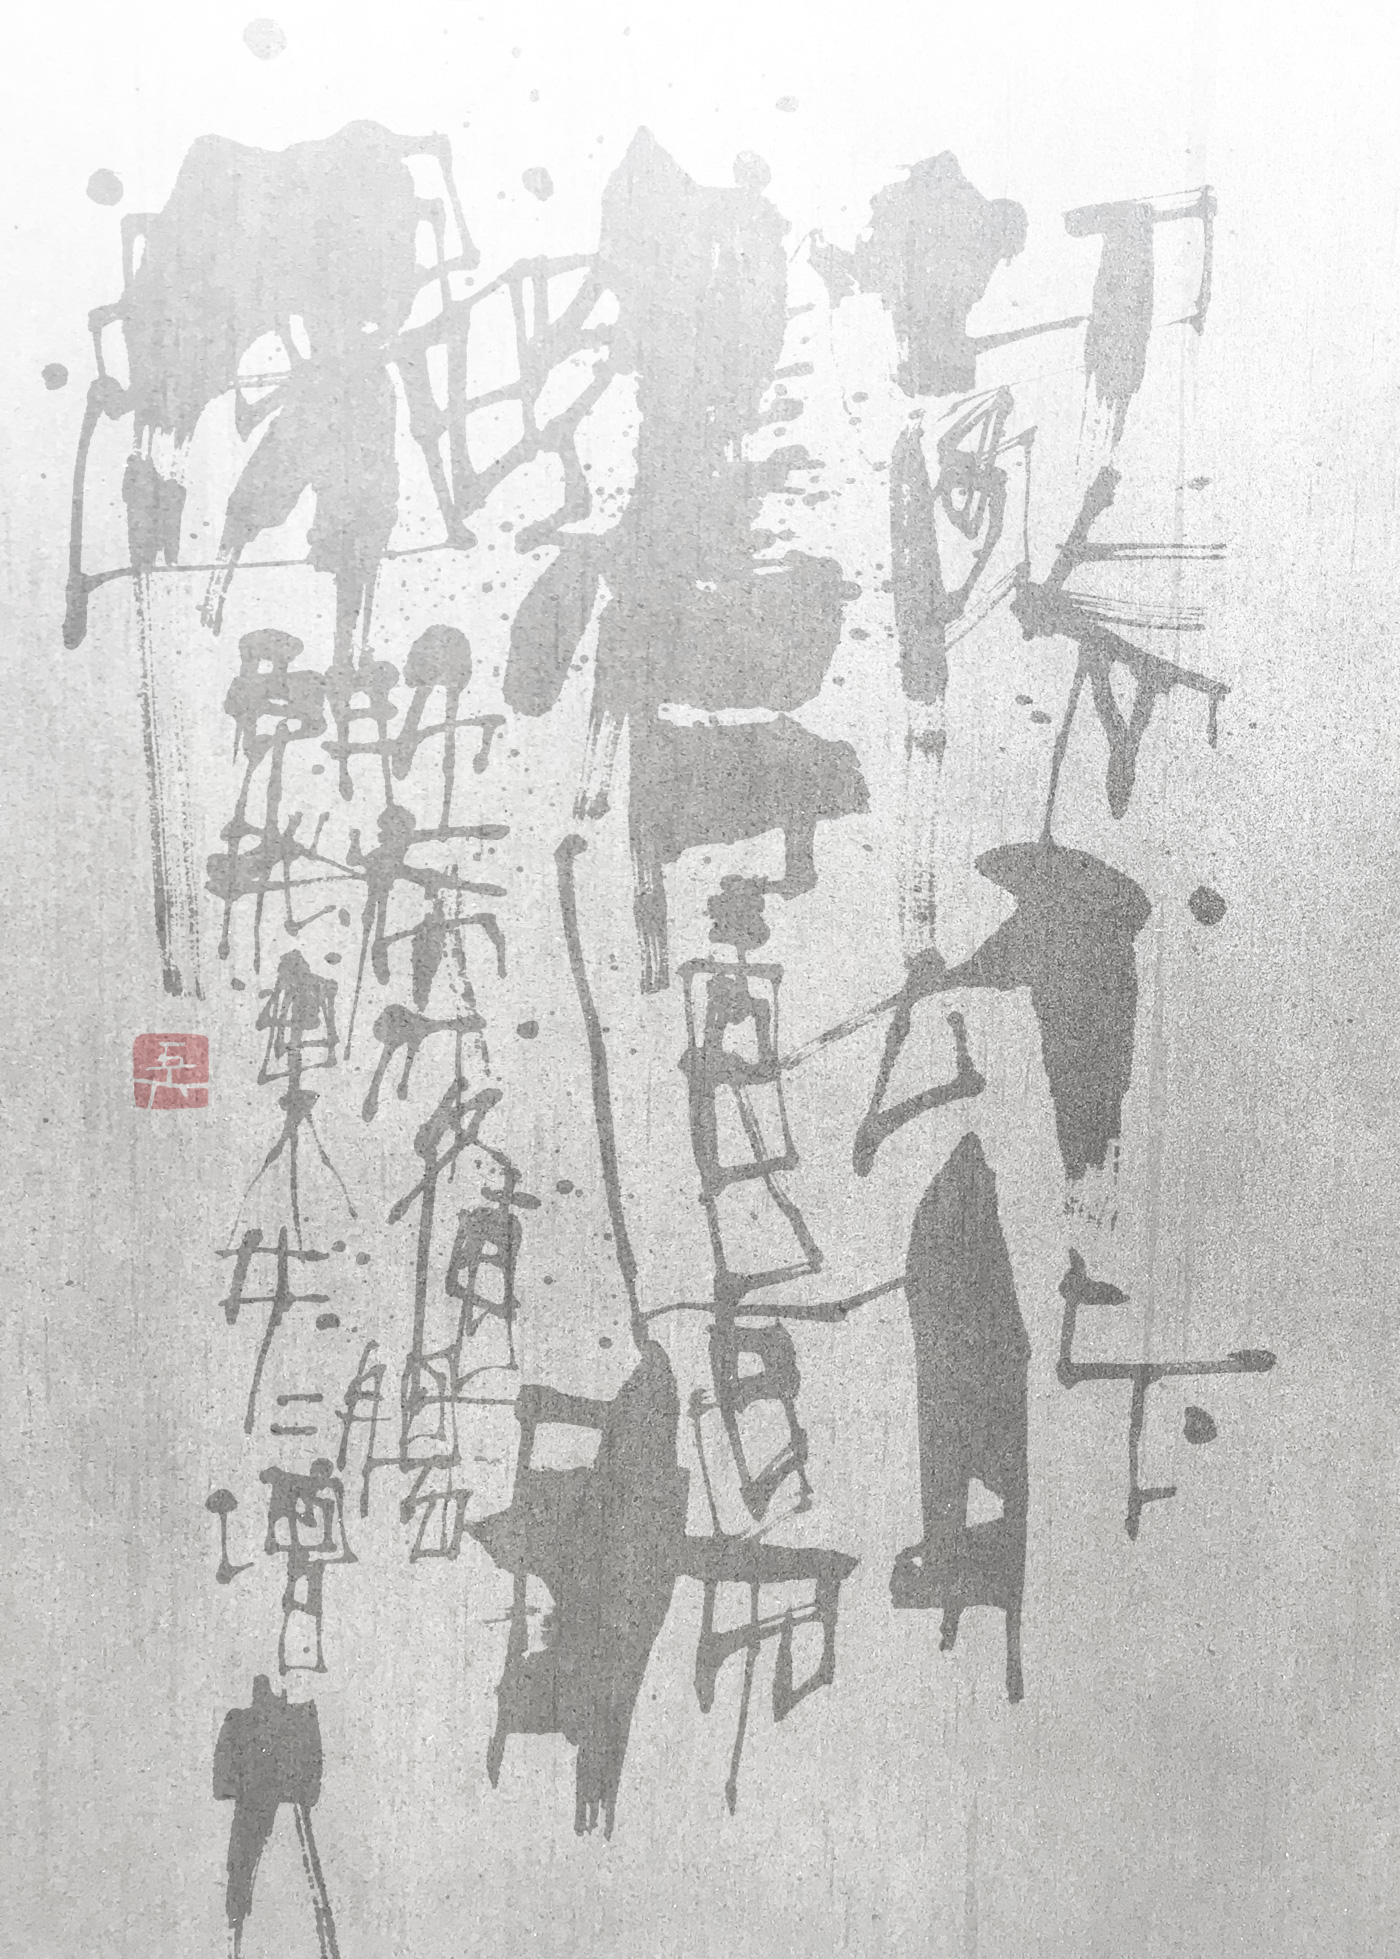 inoperable colorectal cancer, spread to the lungs 書道作品 japaneseart japanese calligraphy 書家 田川悟郎 Goroh Tagawa